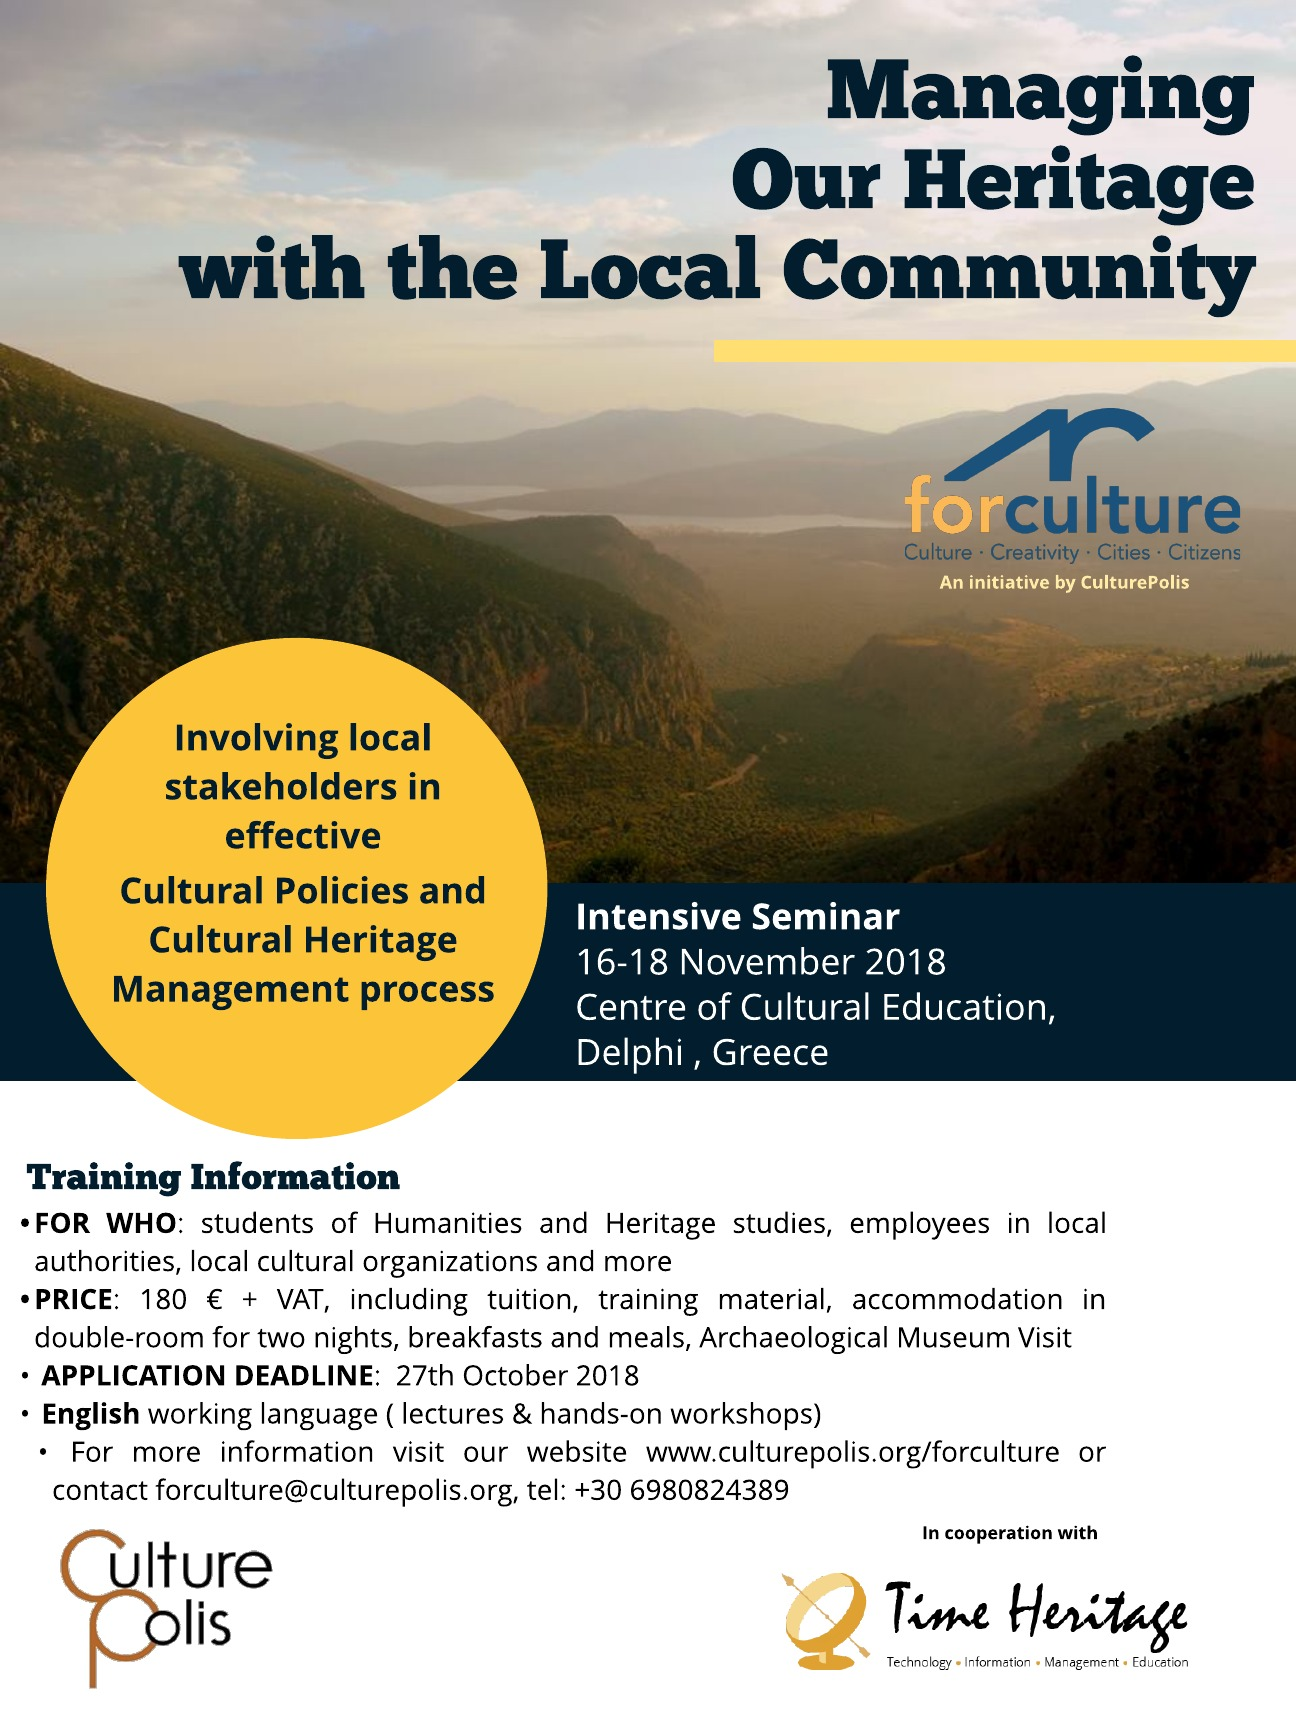 Managing our Heritage with the Local Community_ Intensive Seminar in Delphi